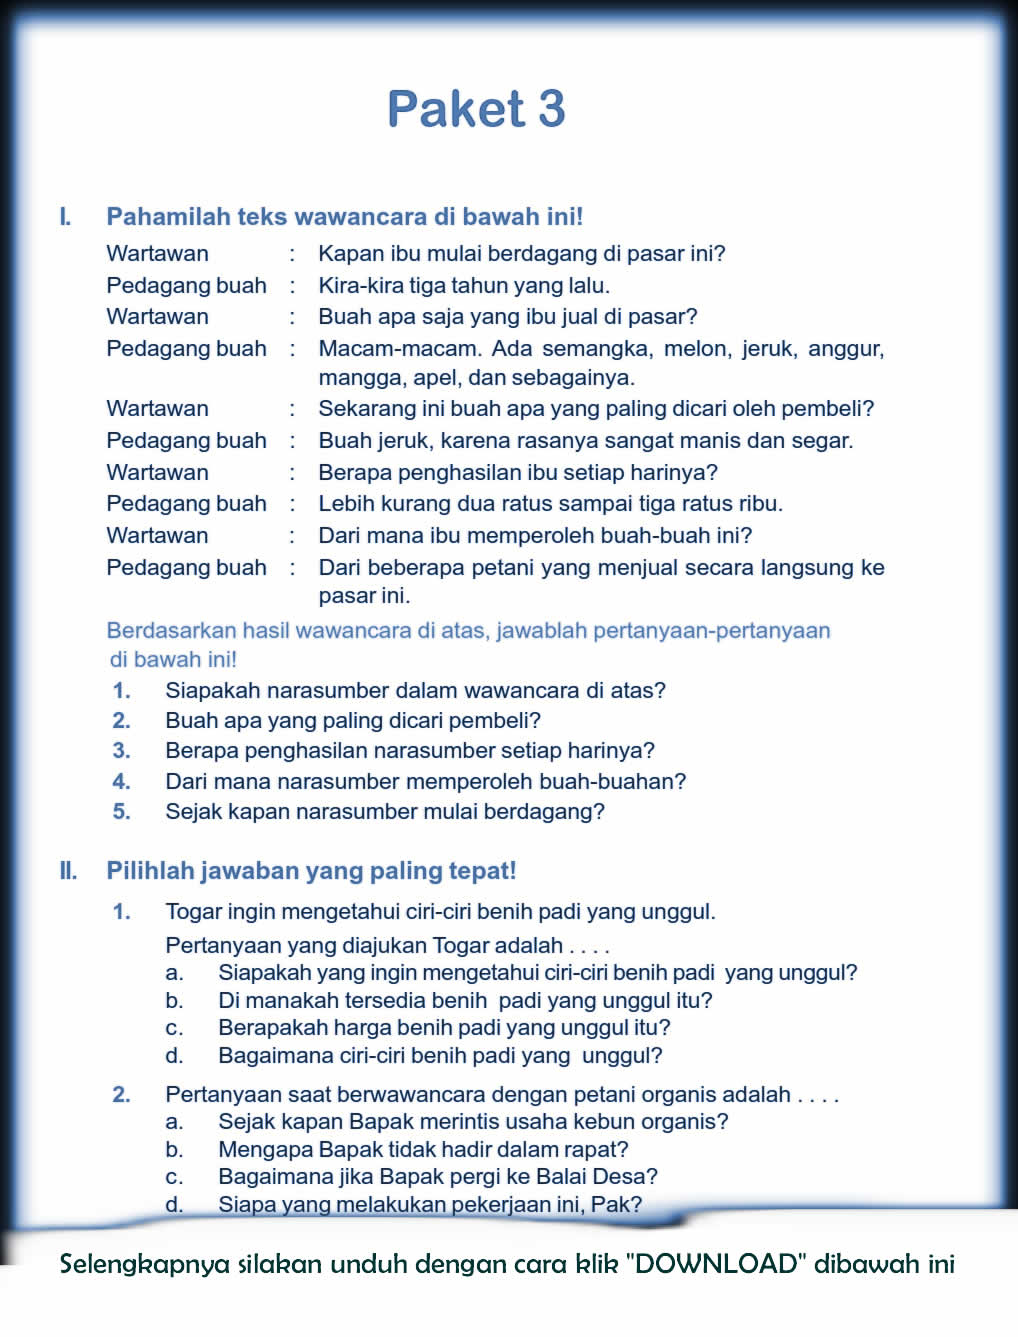 Download Soal Uts Ganjil Bahasa Indonesia Kelas 5 Semester 1 2015 2016 Rief Awa Blog